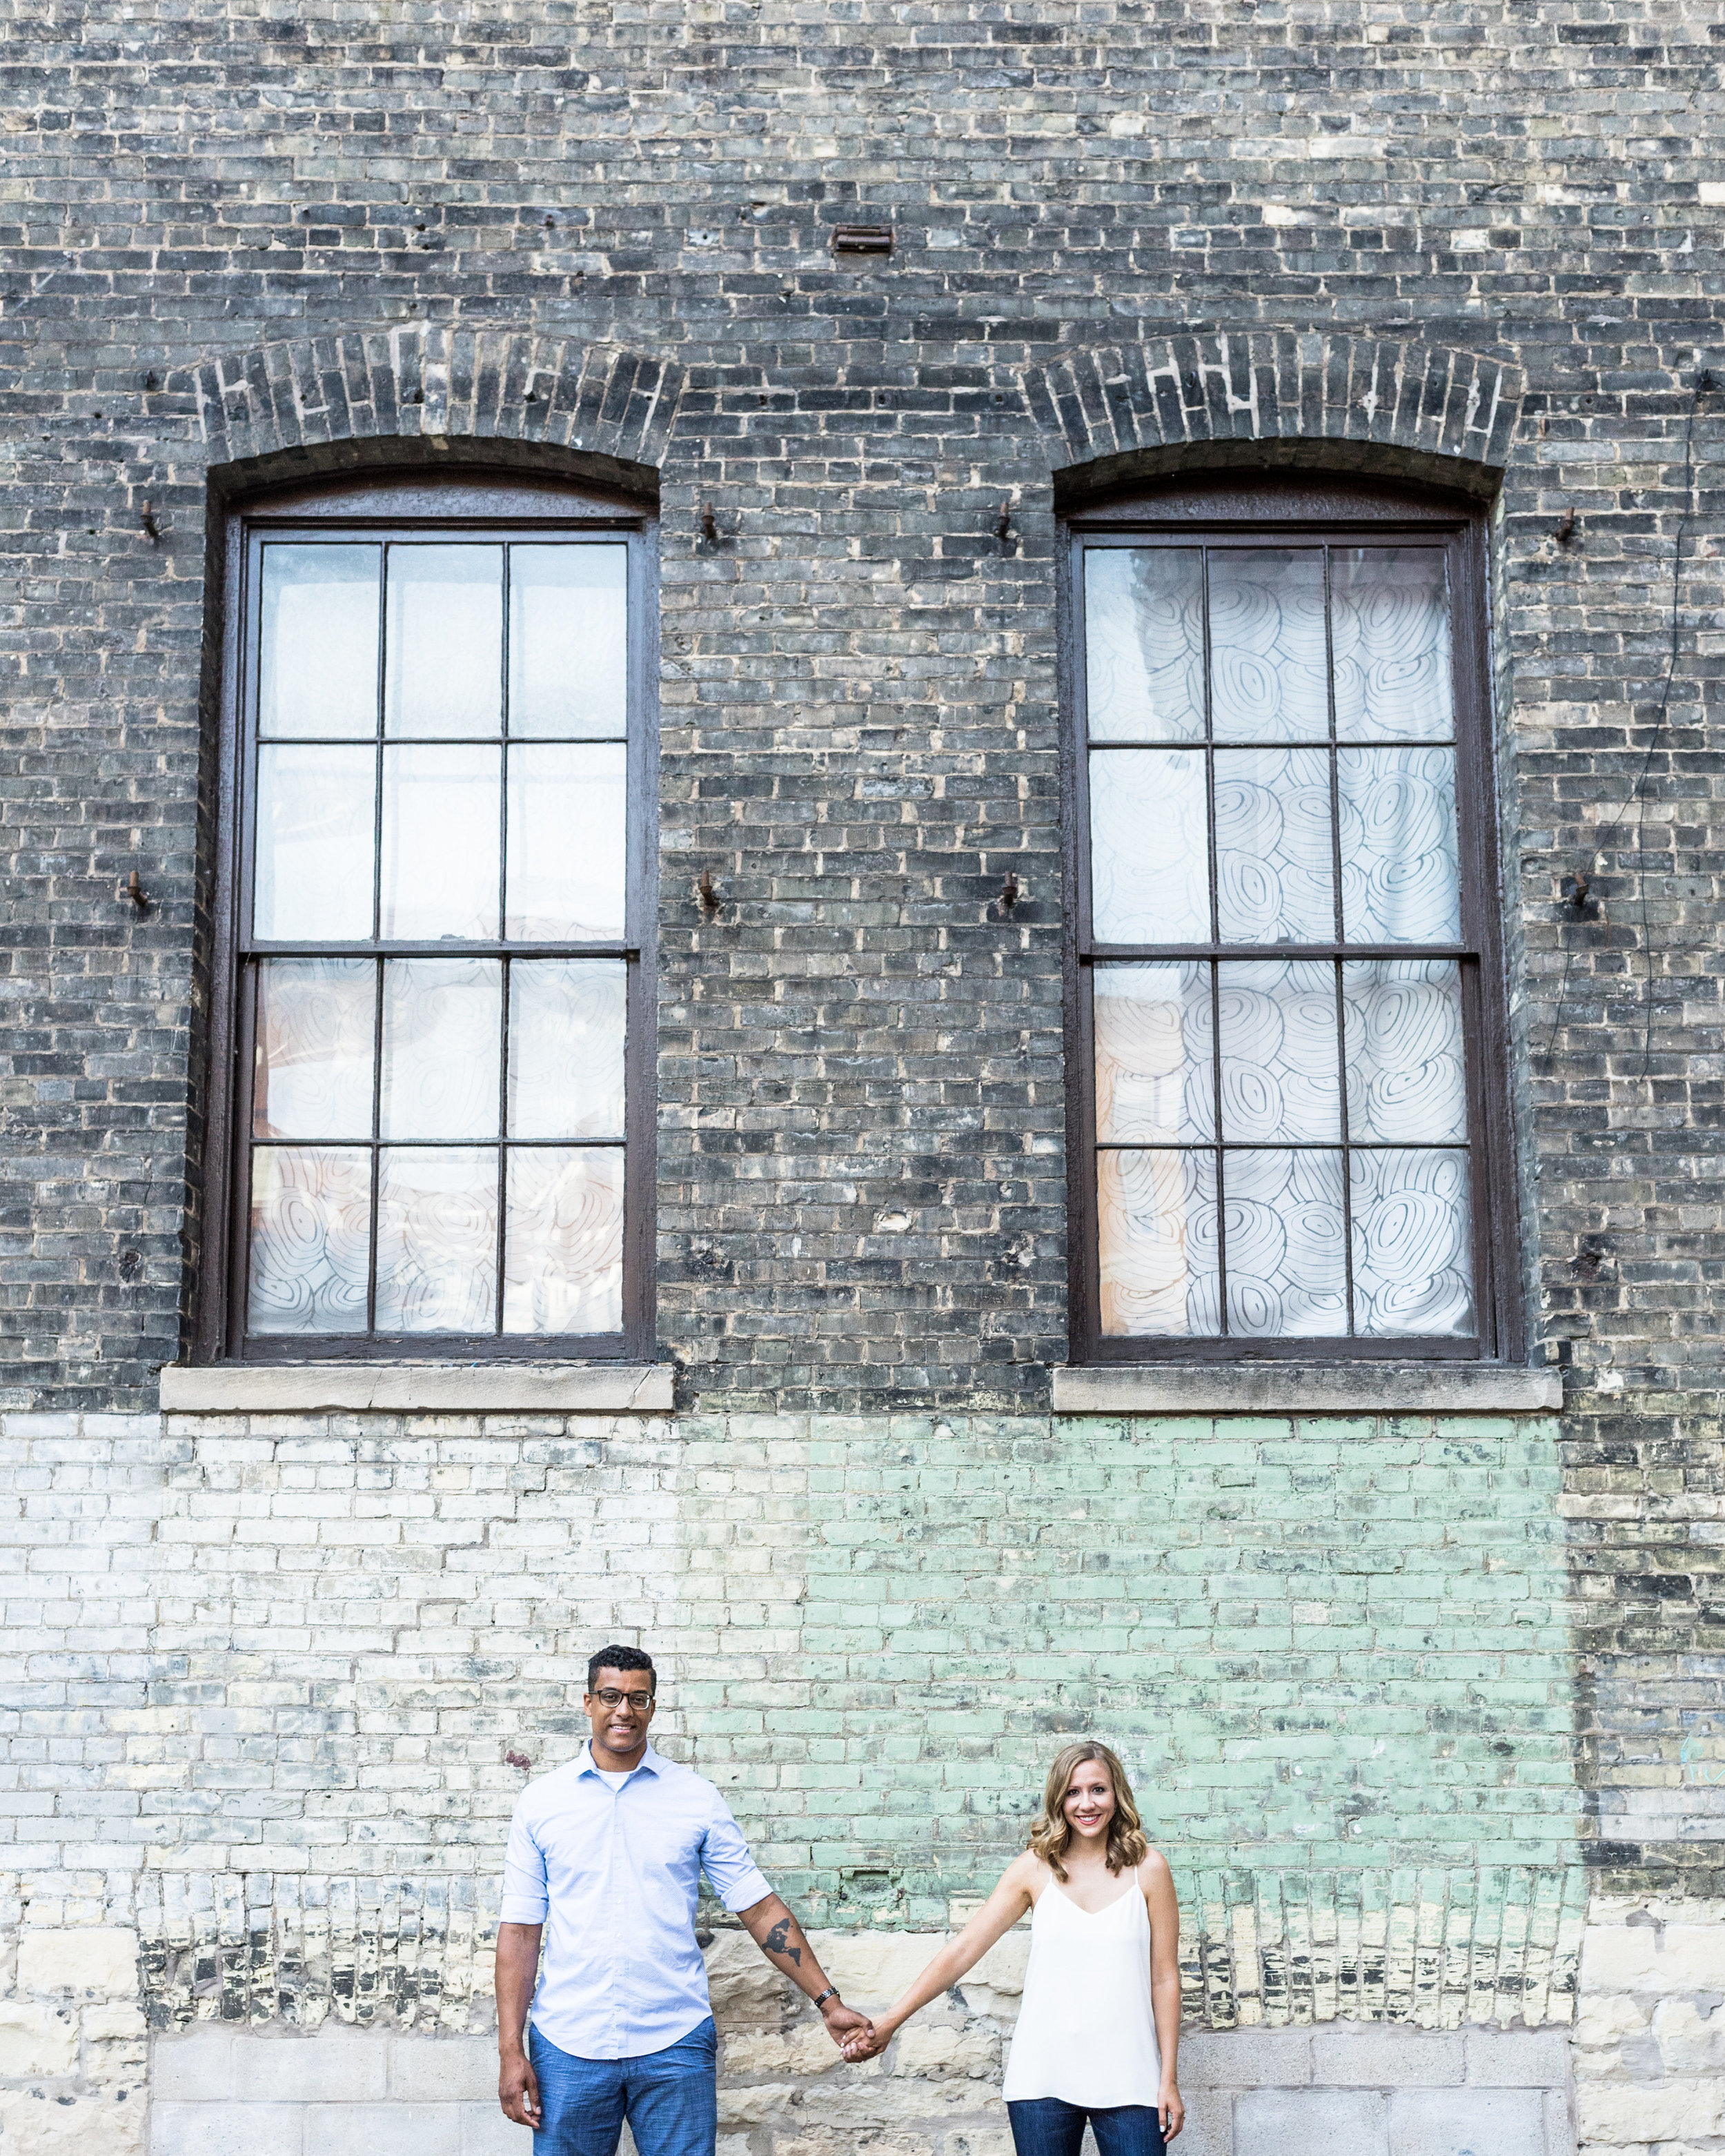 Christina and Baba Engagement Session-Christina baba Engagement June17-0013.jpg